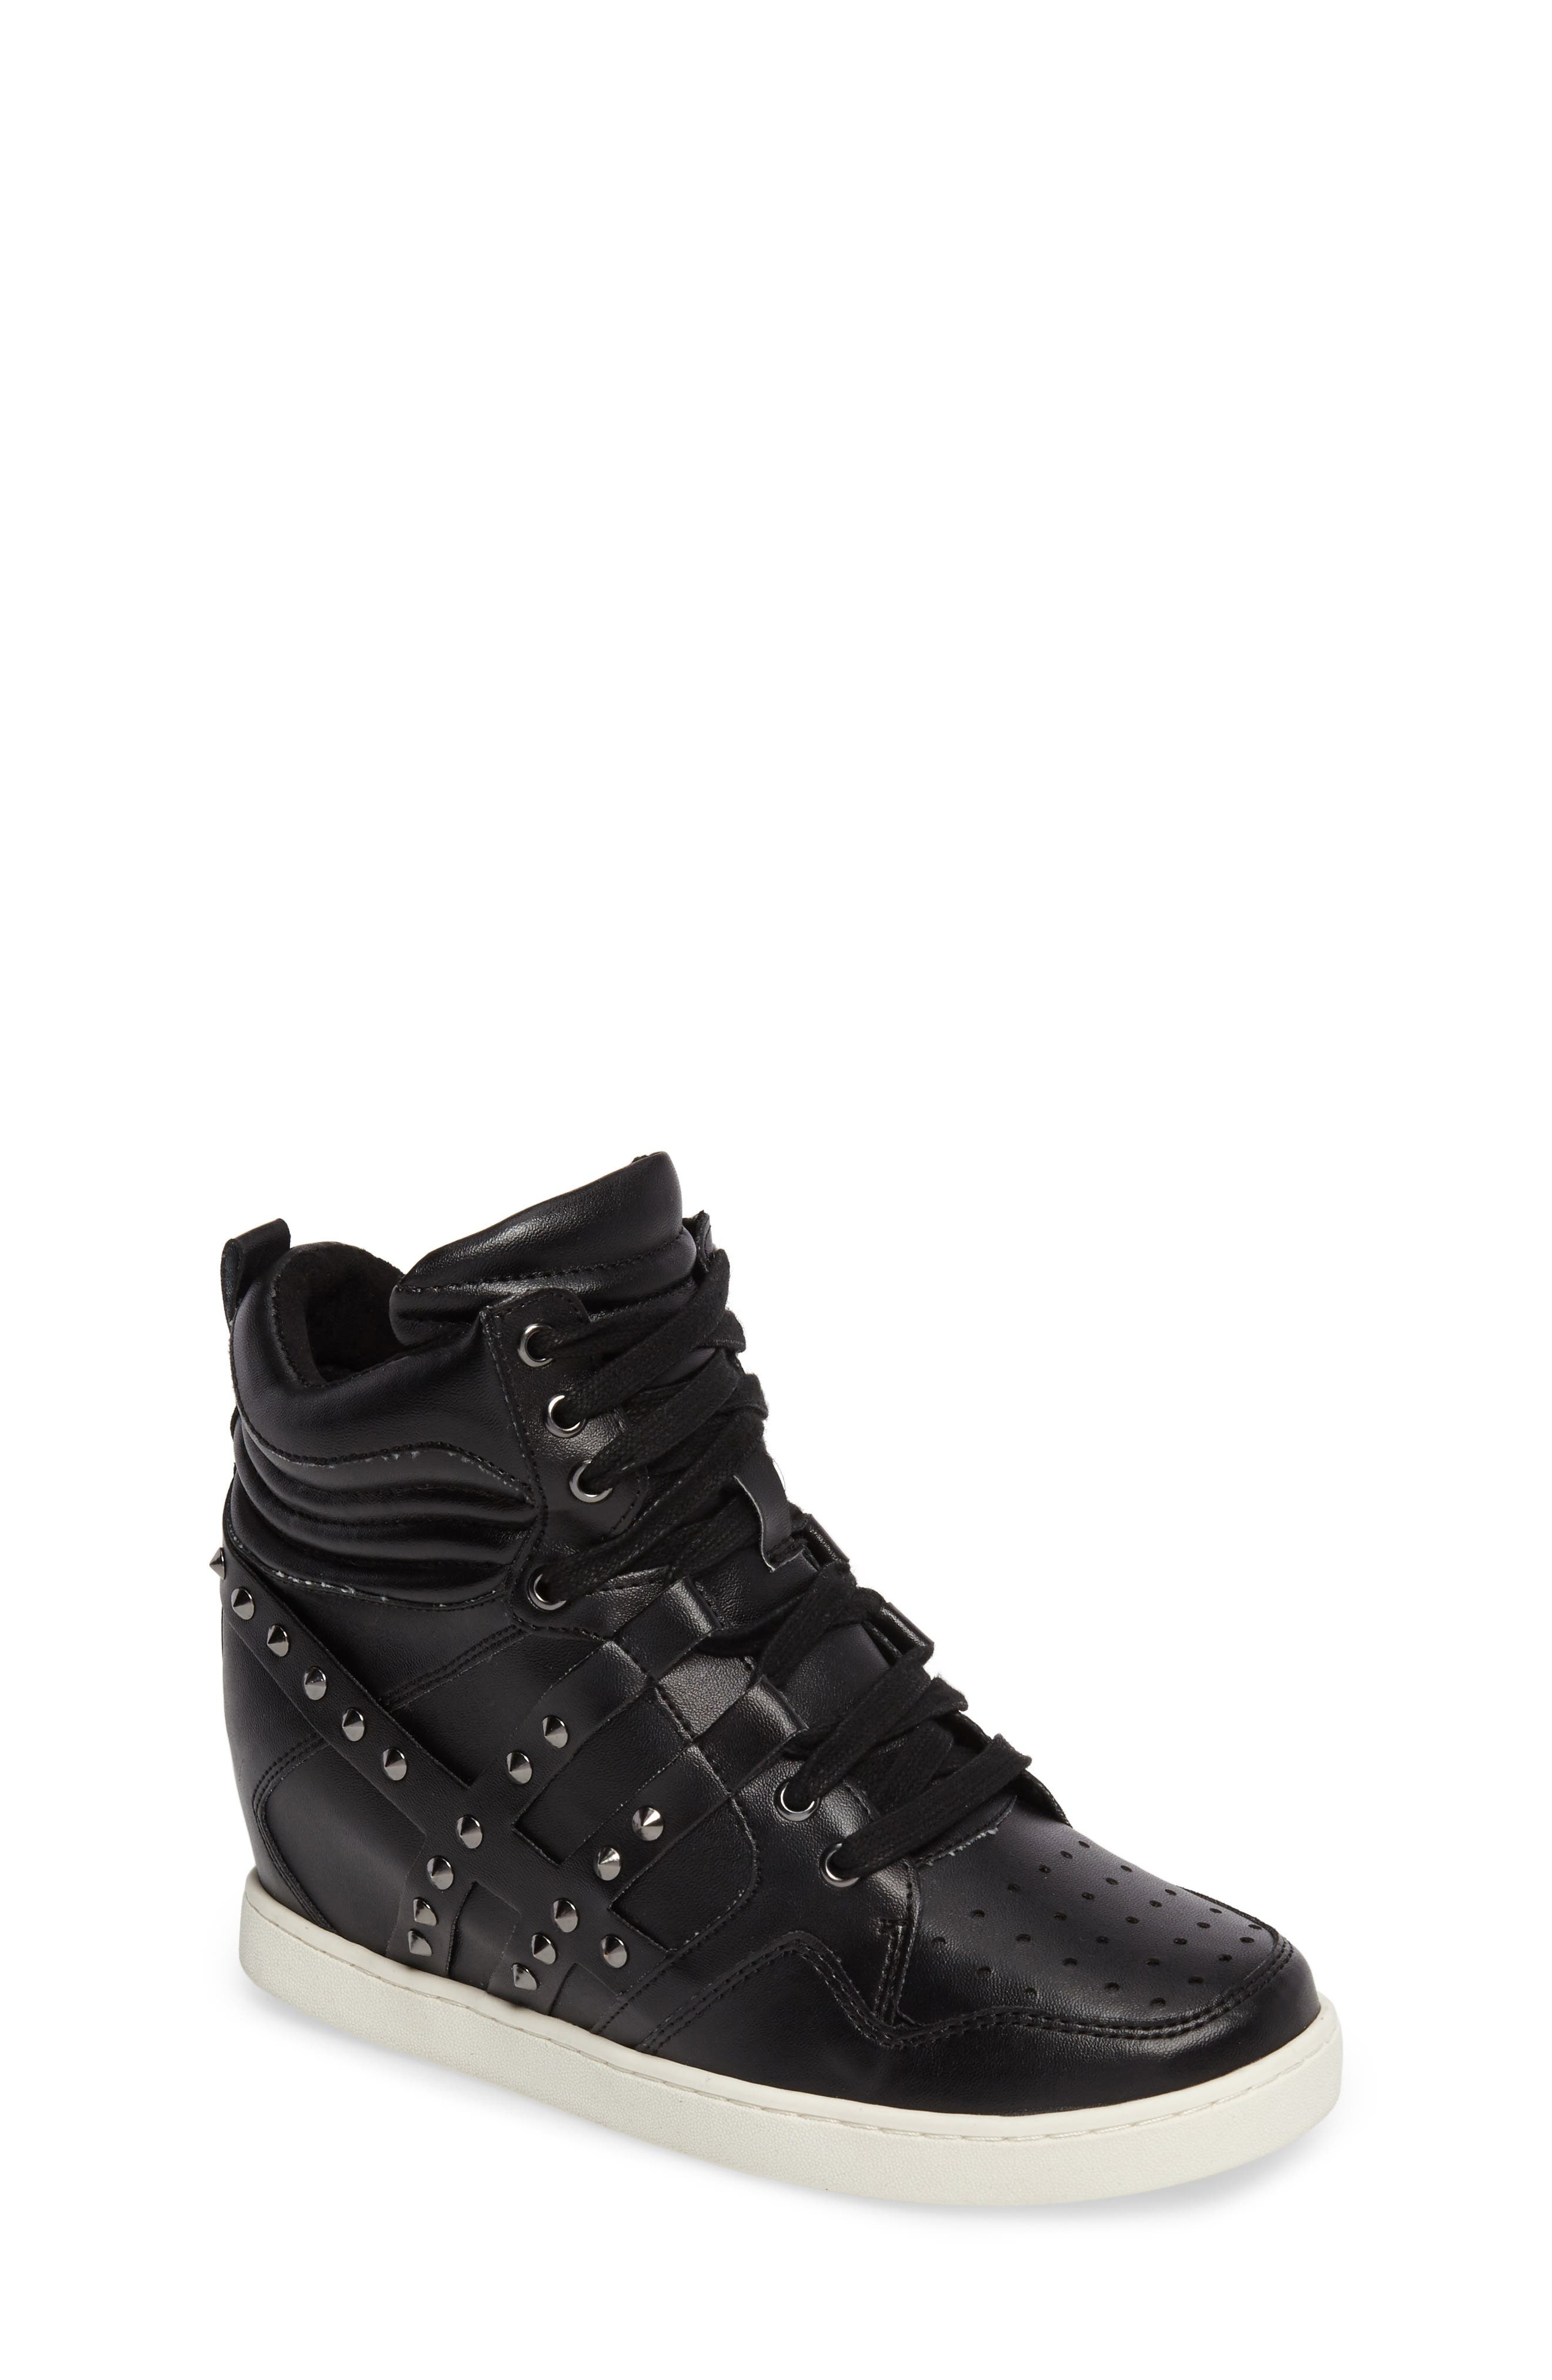 Boogie Chic Studded High Top Sneaker,                             Main thumbnail 1, color,                             Black Faux Leather